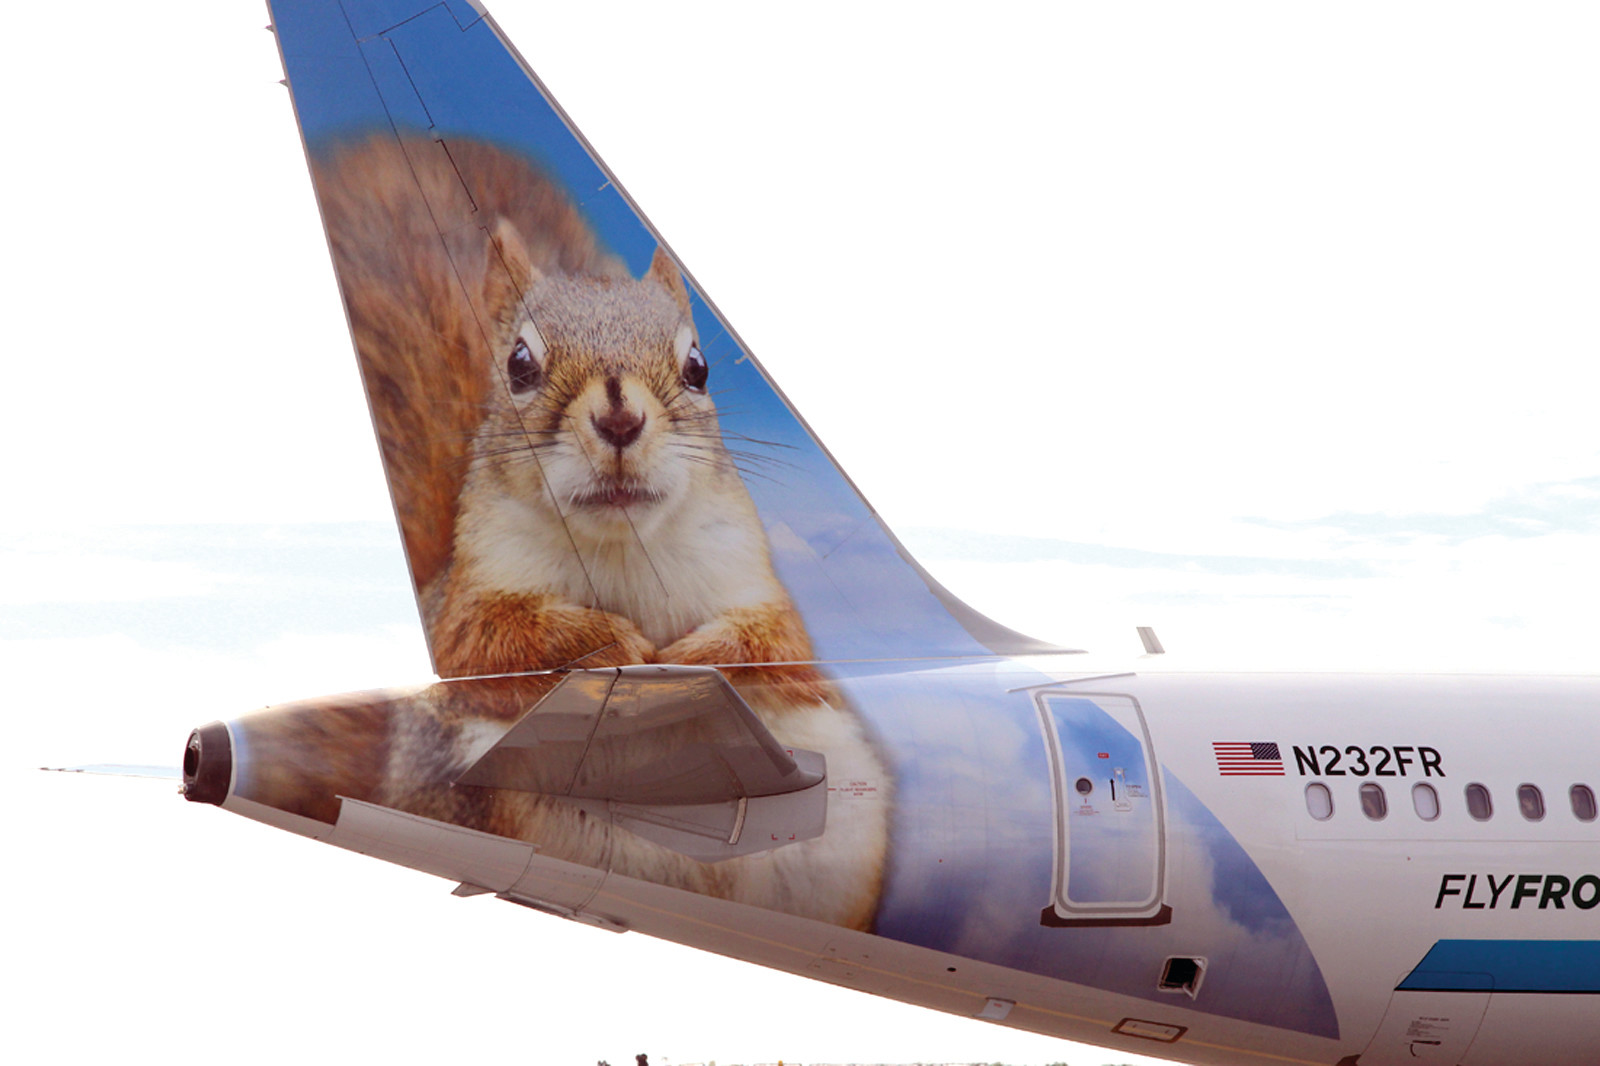 SAMMY THE SQUIRREL: Sammy goes nuts for Rhode Island on his first trip here.